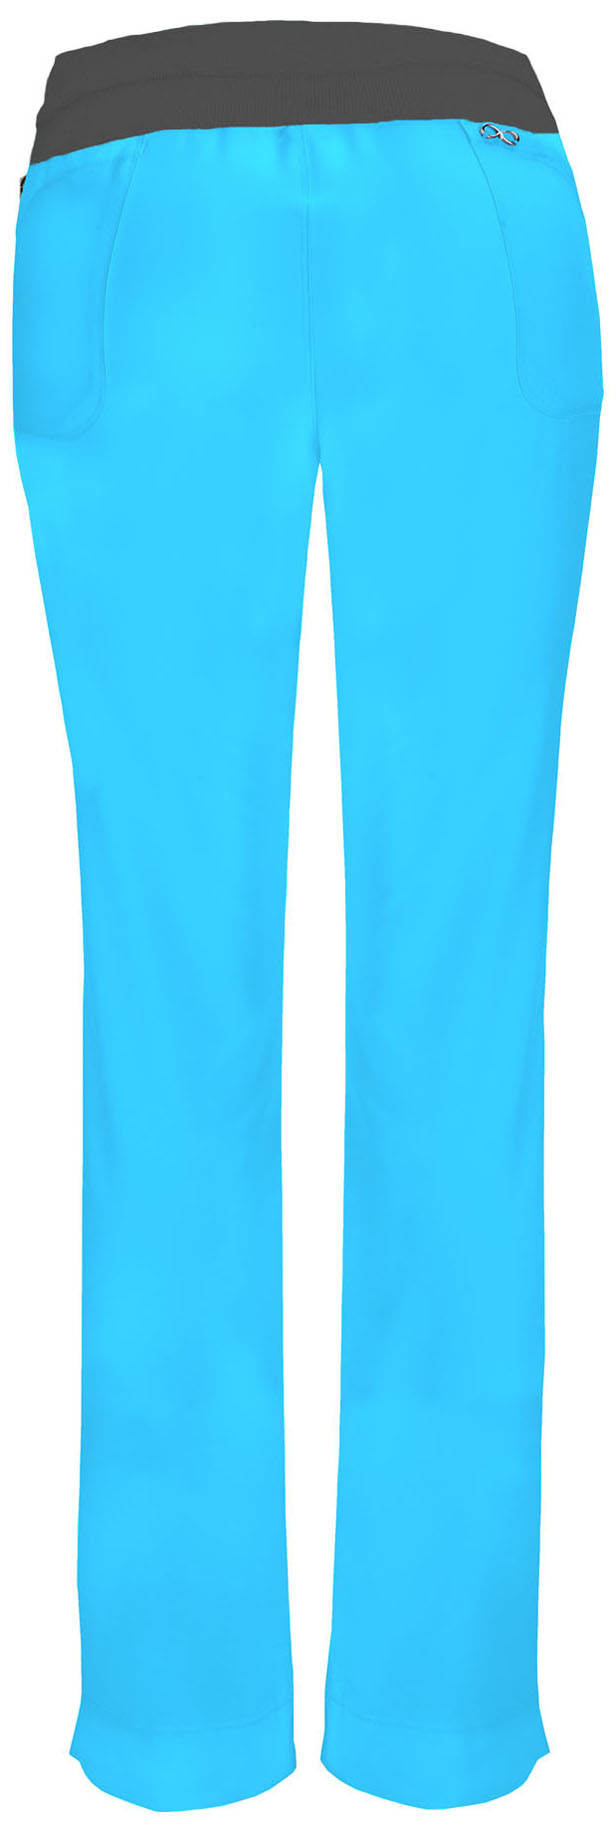 CHEROKEE Turquoise Low Rise Pull-On Women's Pants 1124A